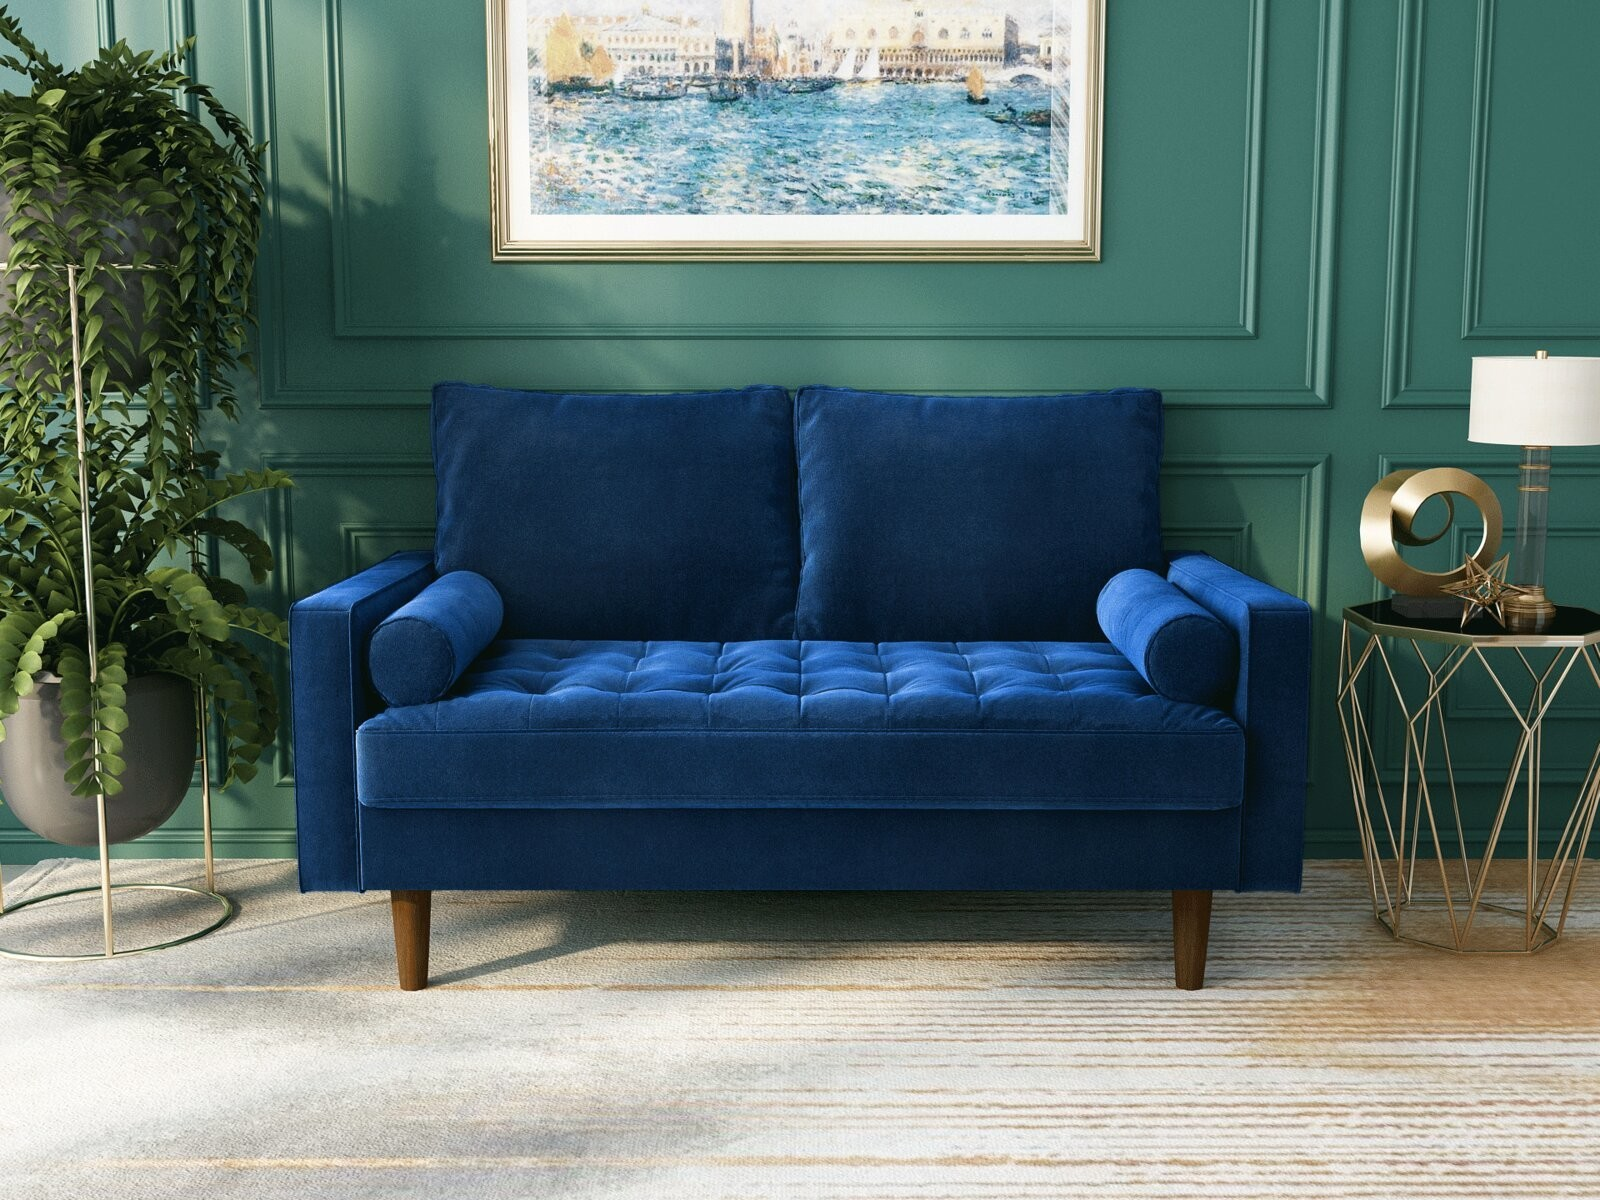 The Best Couches To Buy In 2021